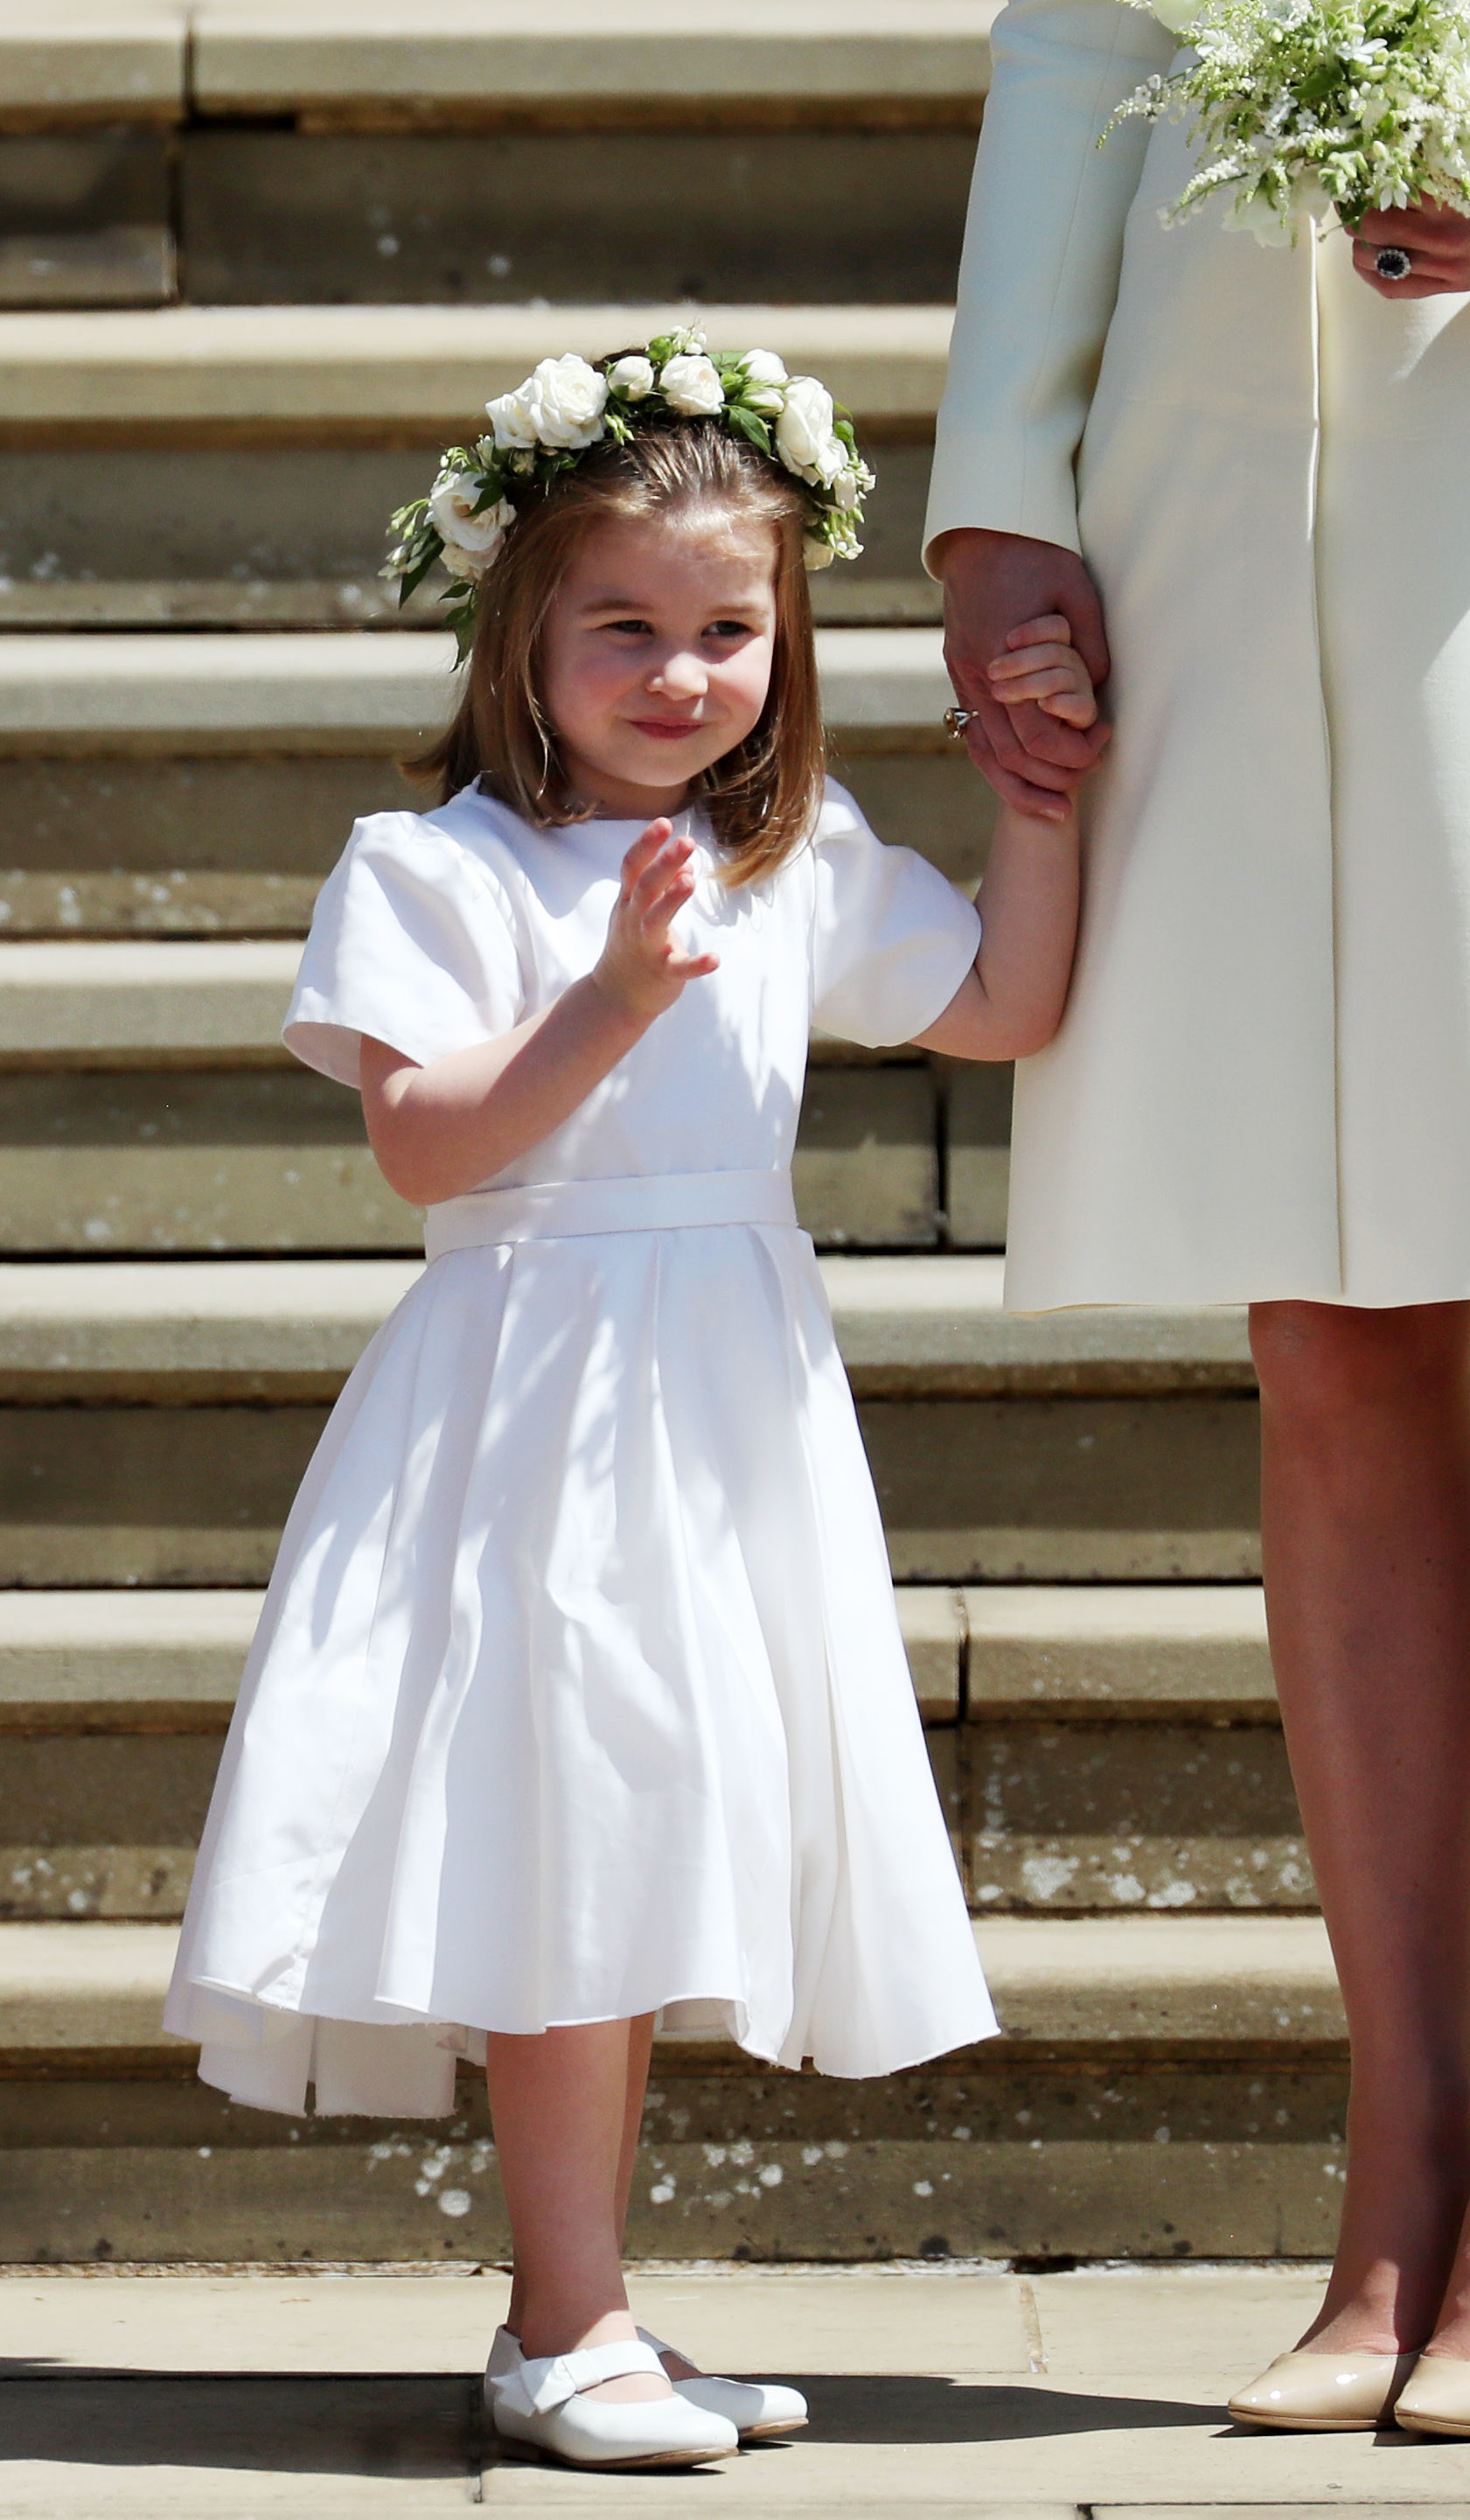 Princess Charlotte at Royal Wedding 2018